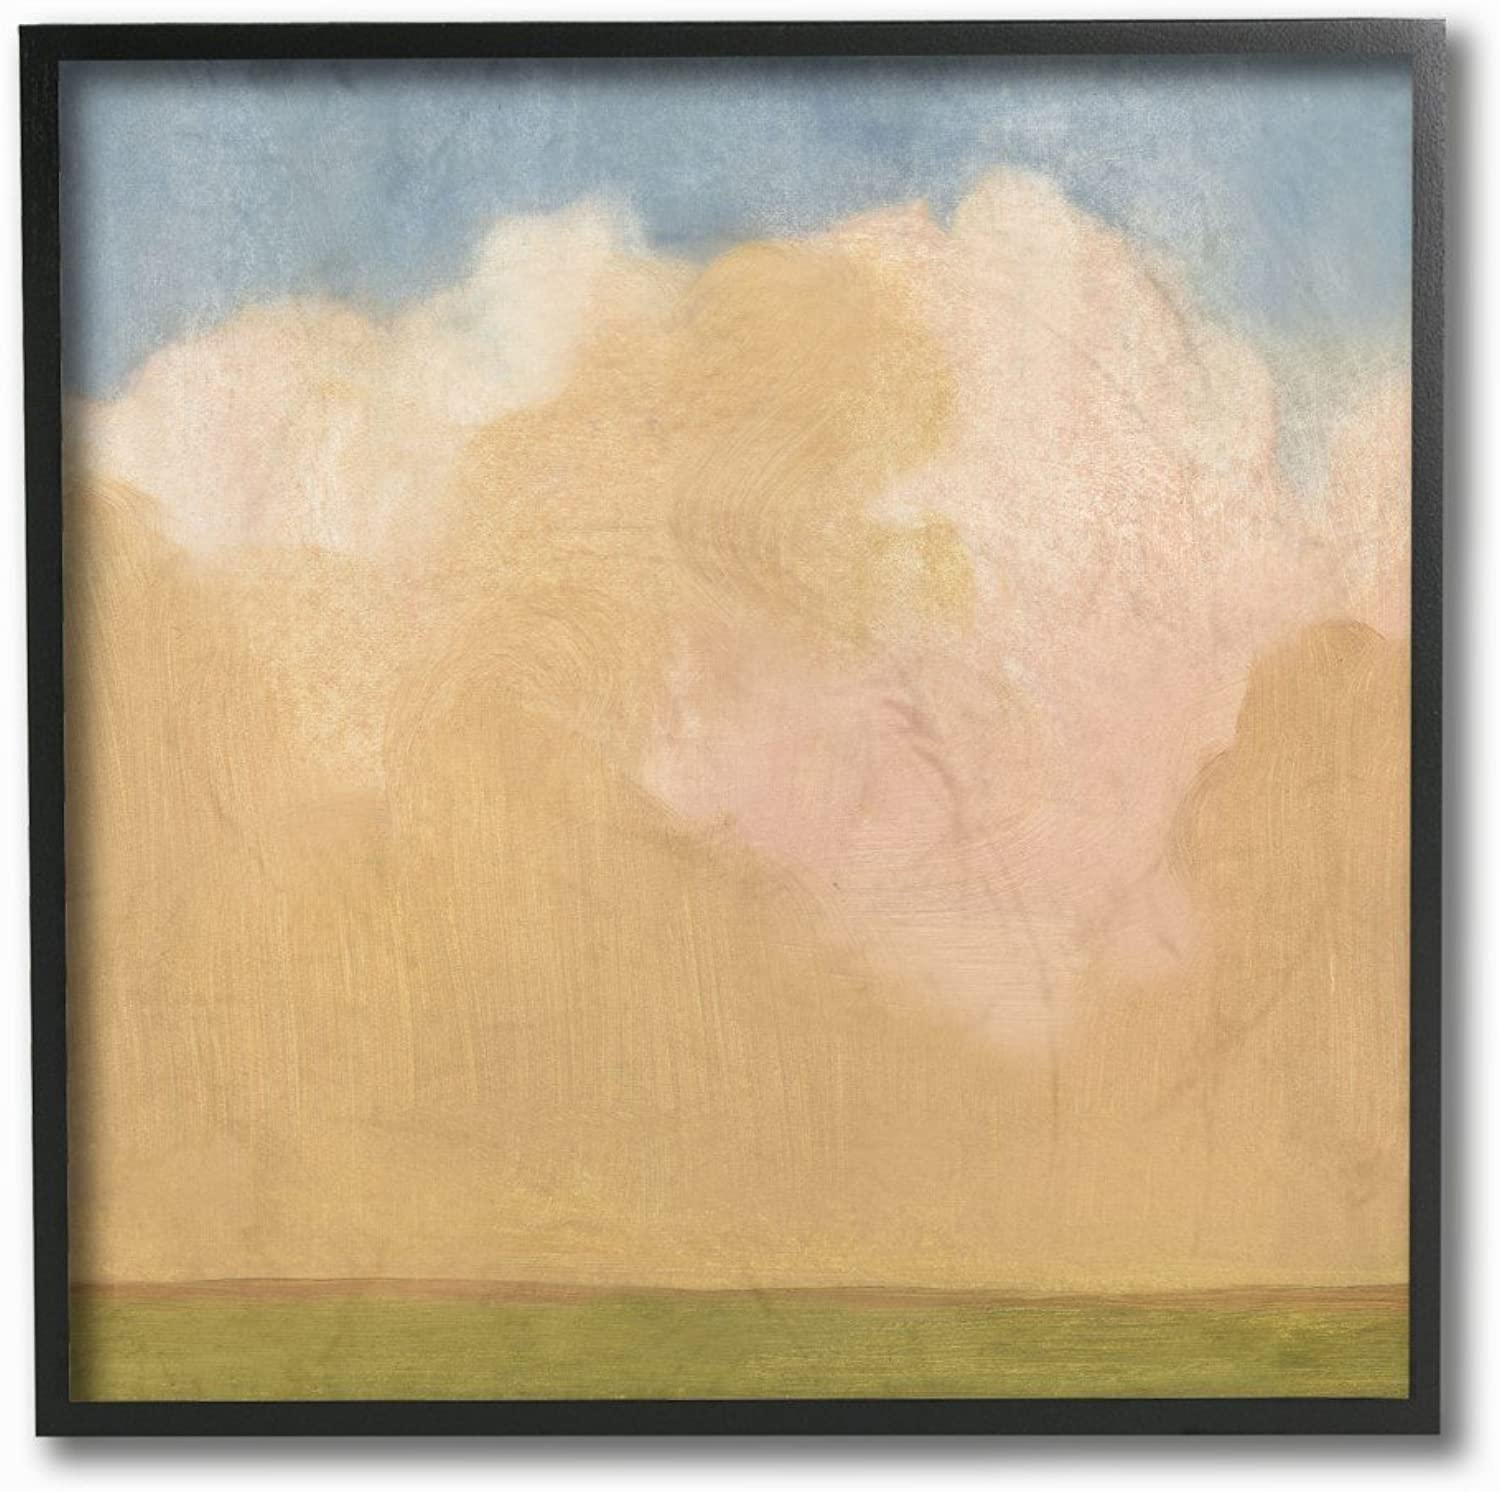 The Stupell Home Decor Collection Painted Fields Clouds Farm Framed Giclee Texturized Art, 12 x 12, Multicolor